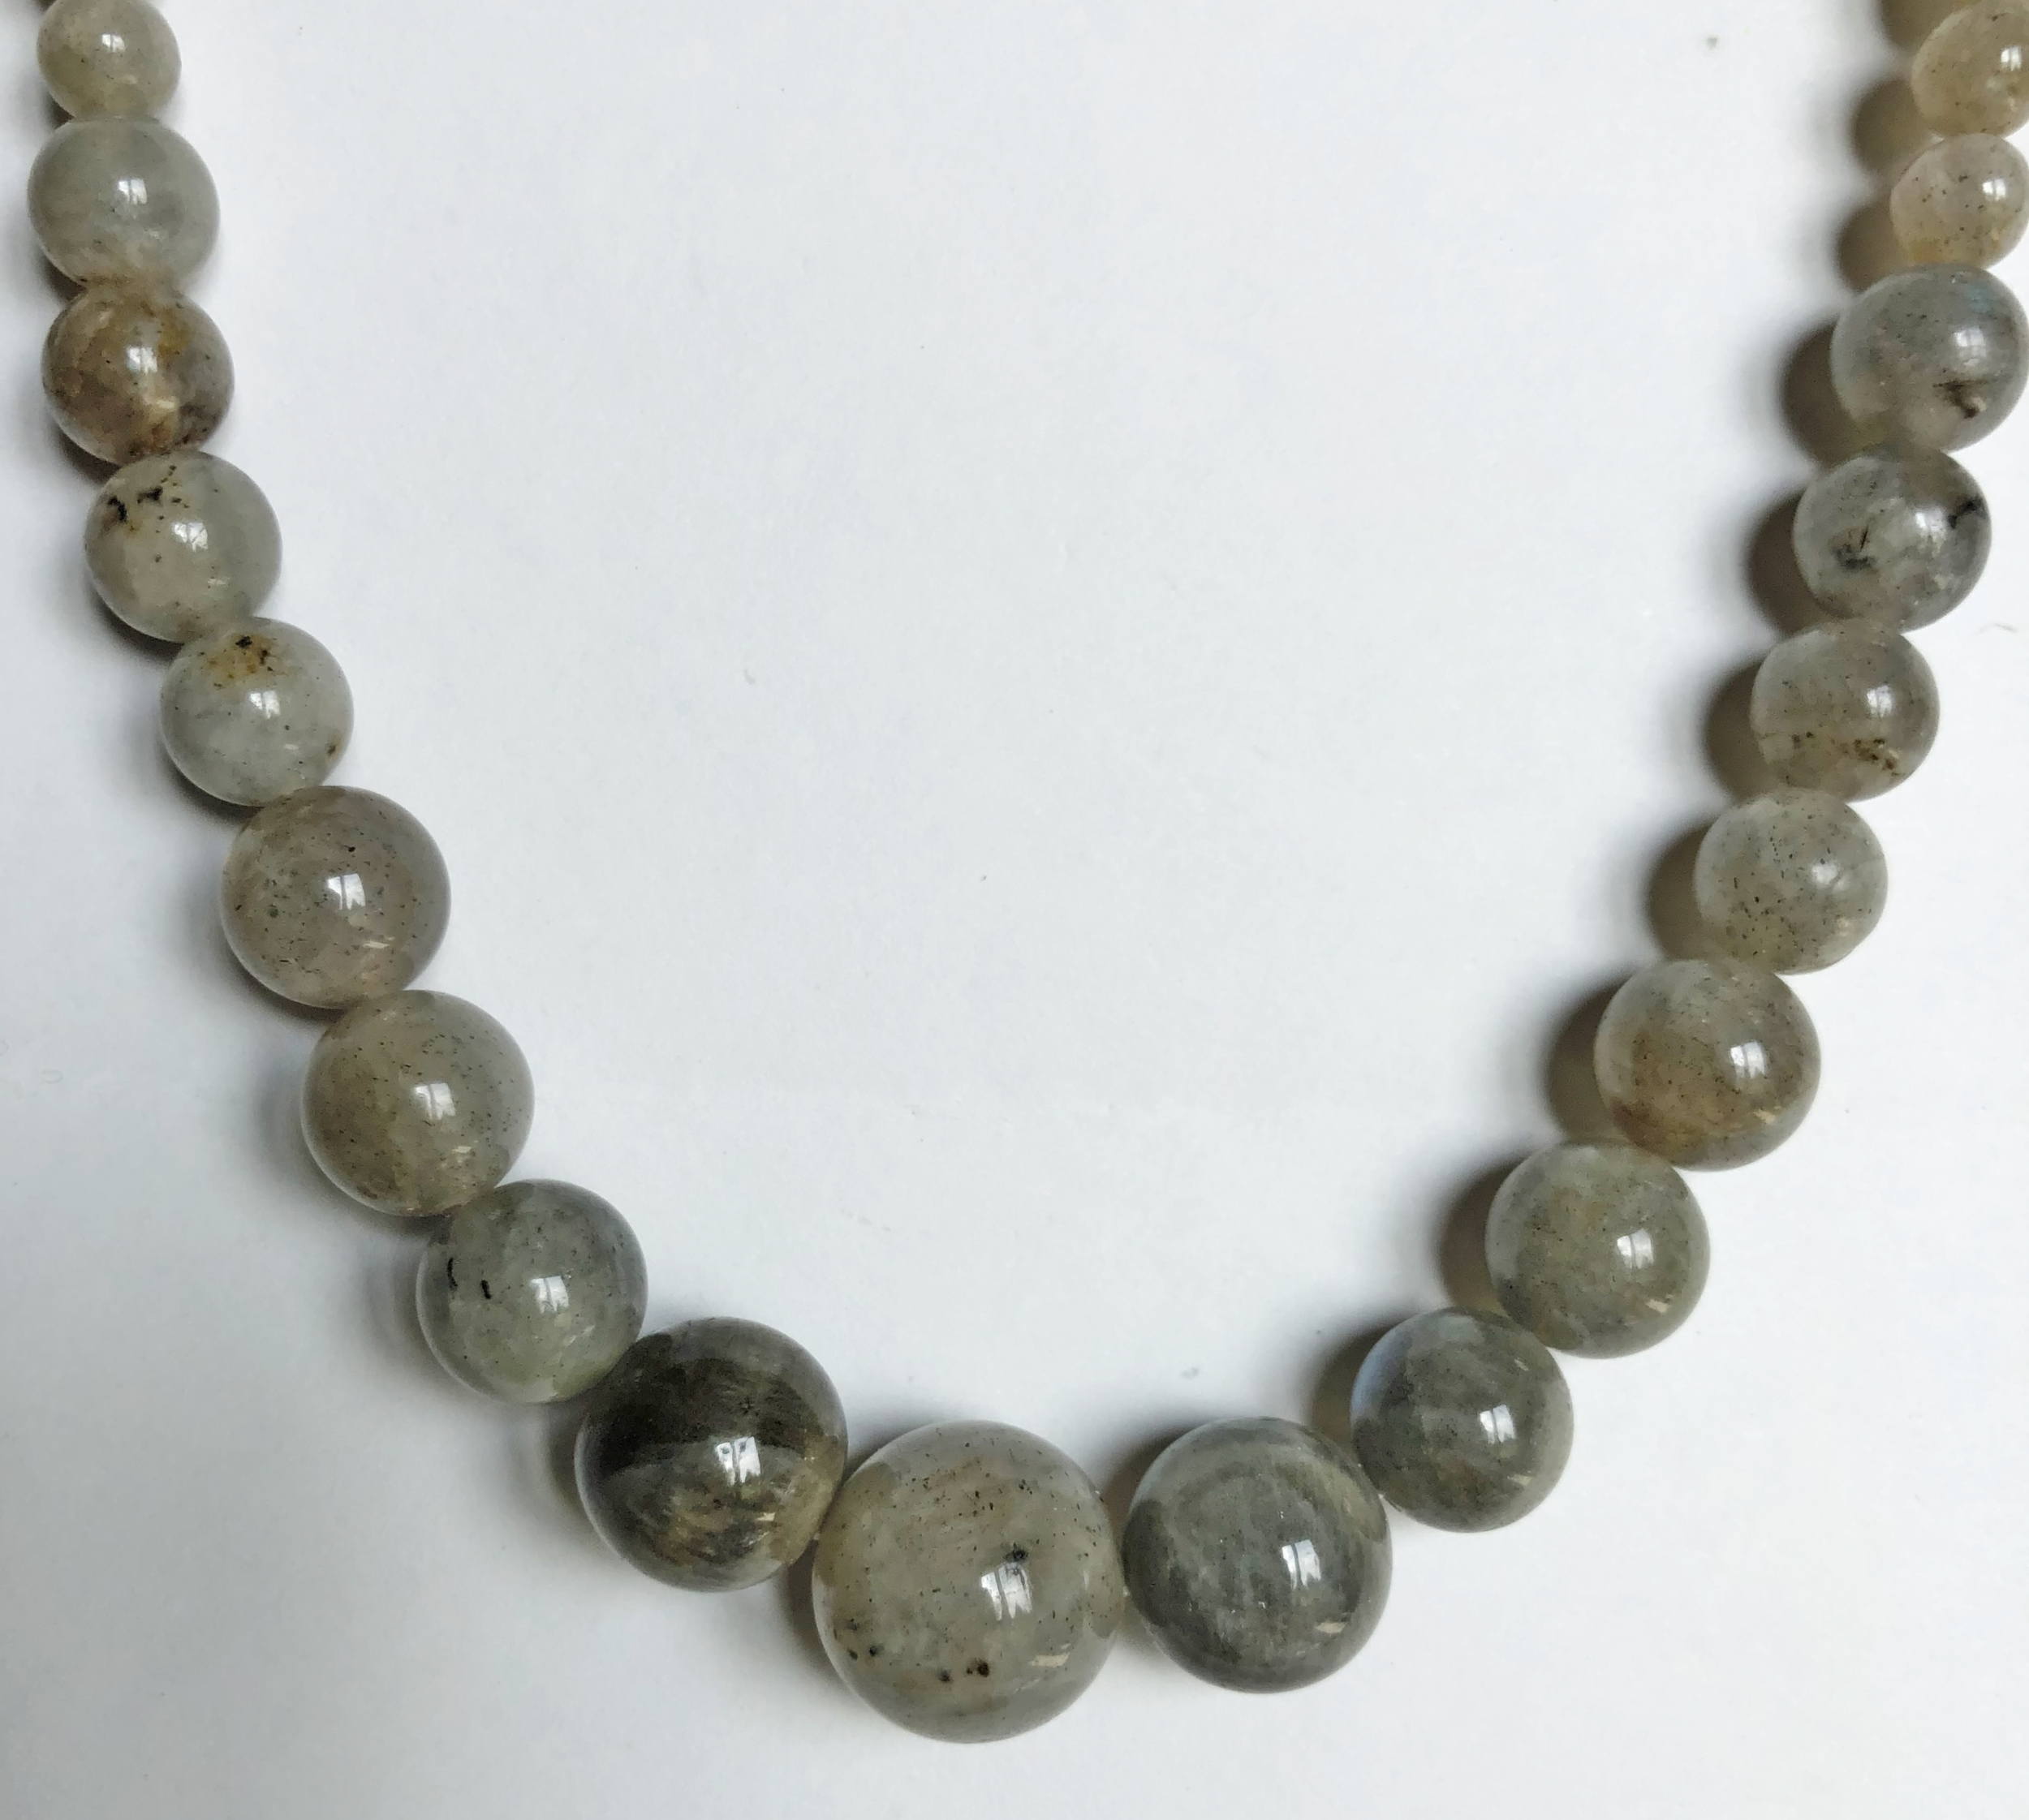 Collier labradorite perles - Angel shop